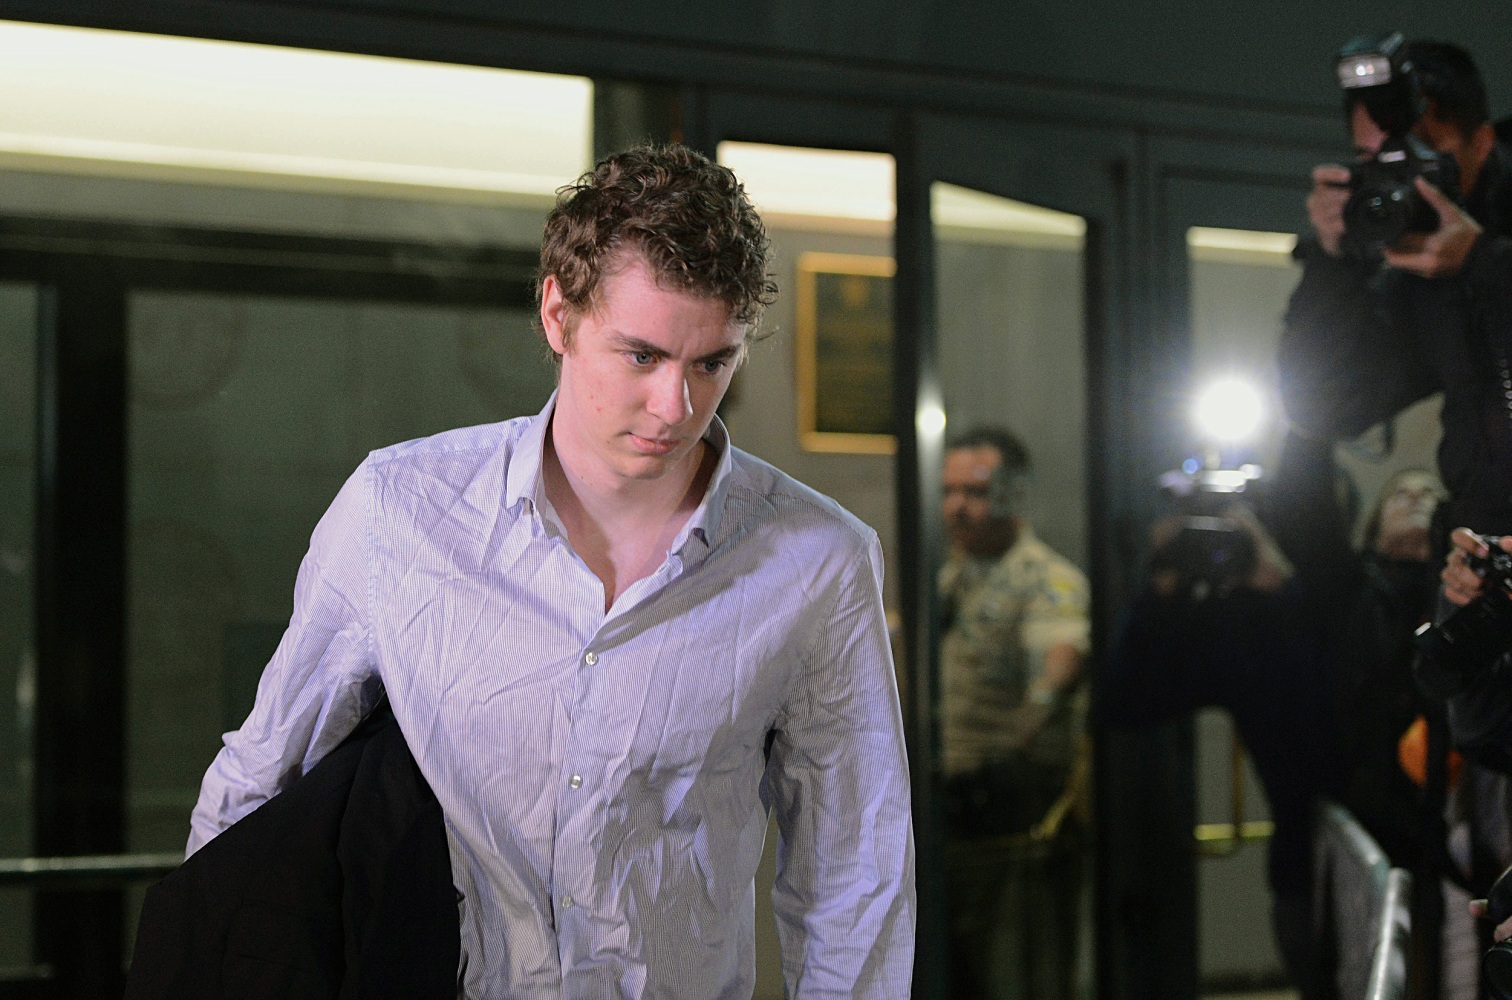 Controversial rapist Brock Turner seeks to overturn conviction